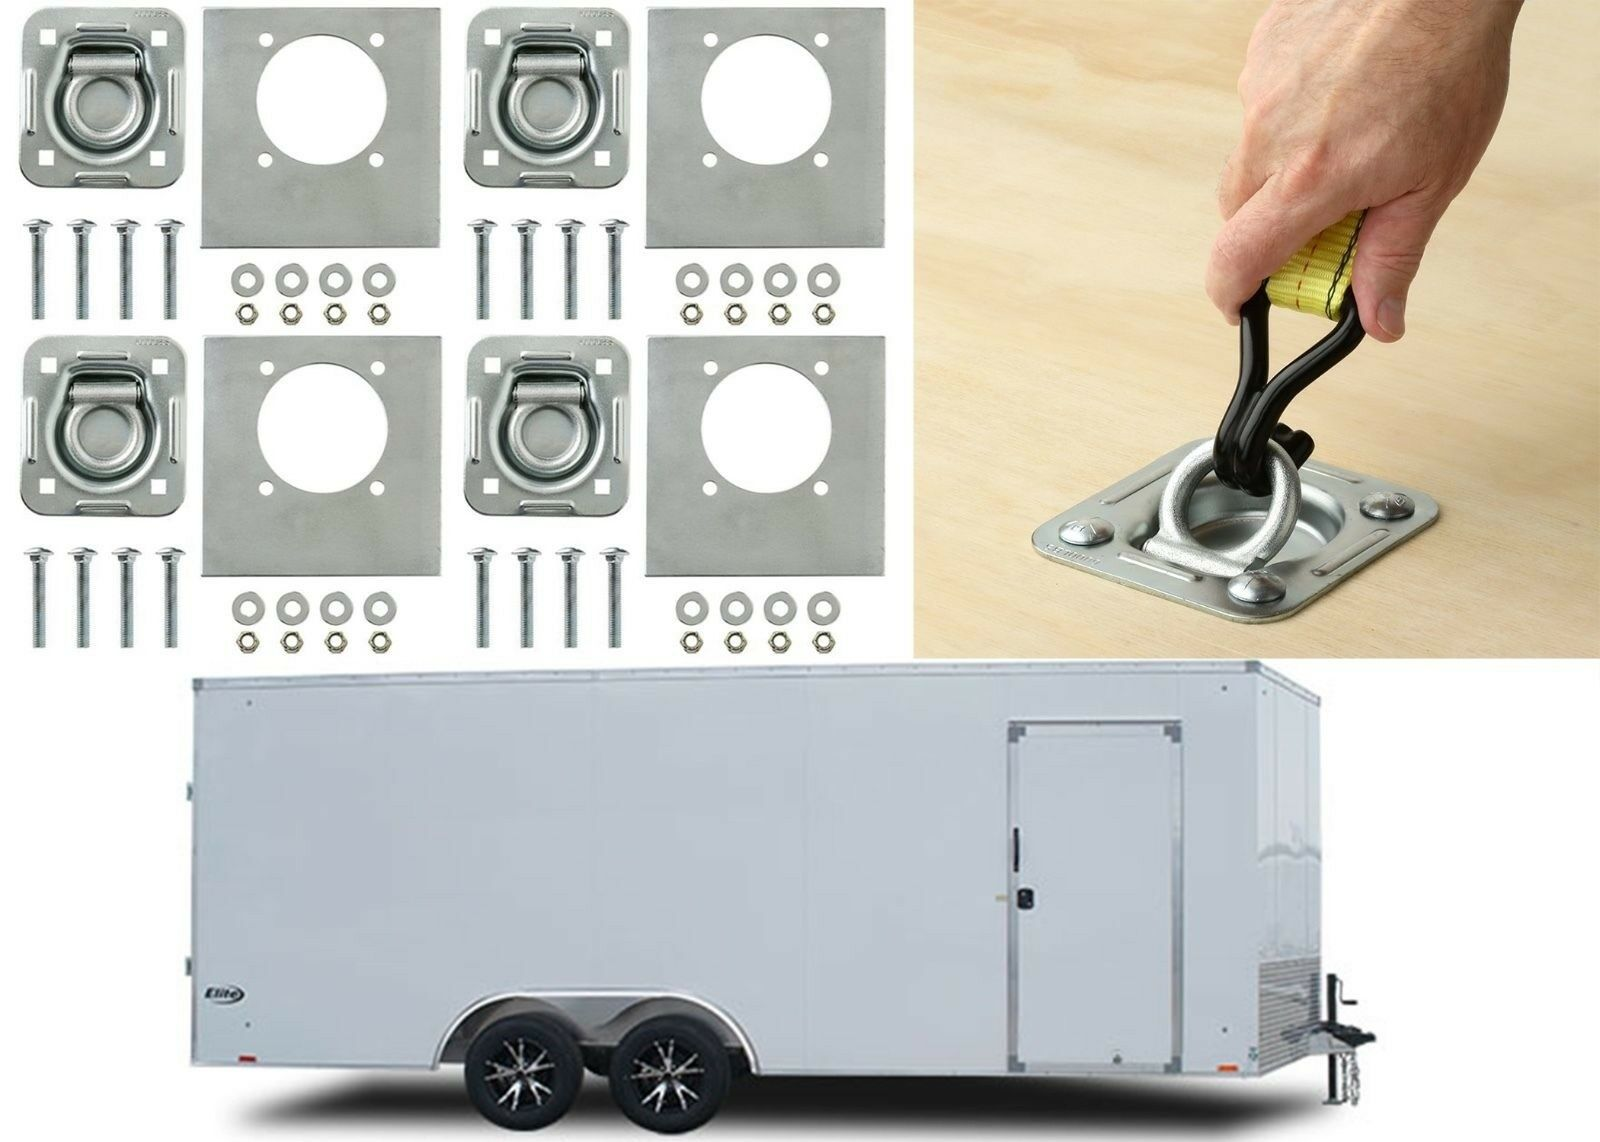 4-pack - Recessed Pan D-ring Trailer Tie Downs 6,000 Lb